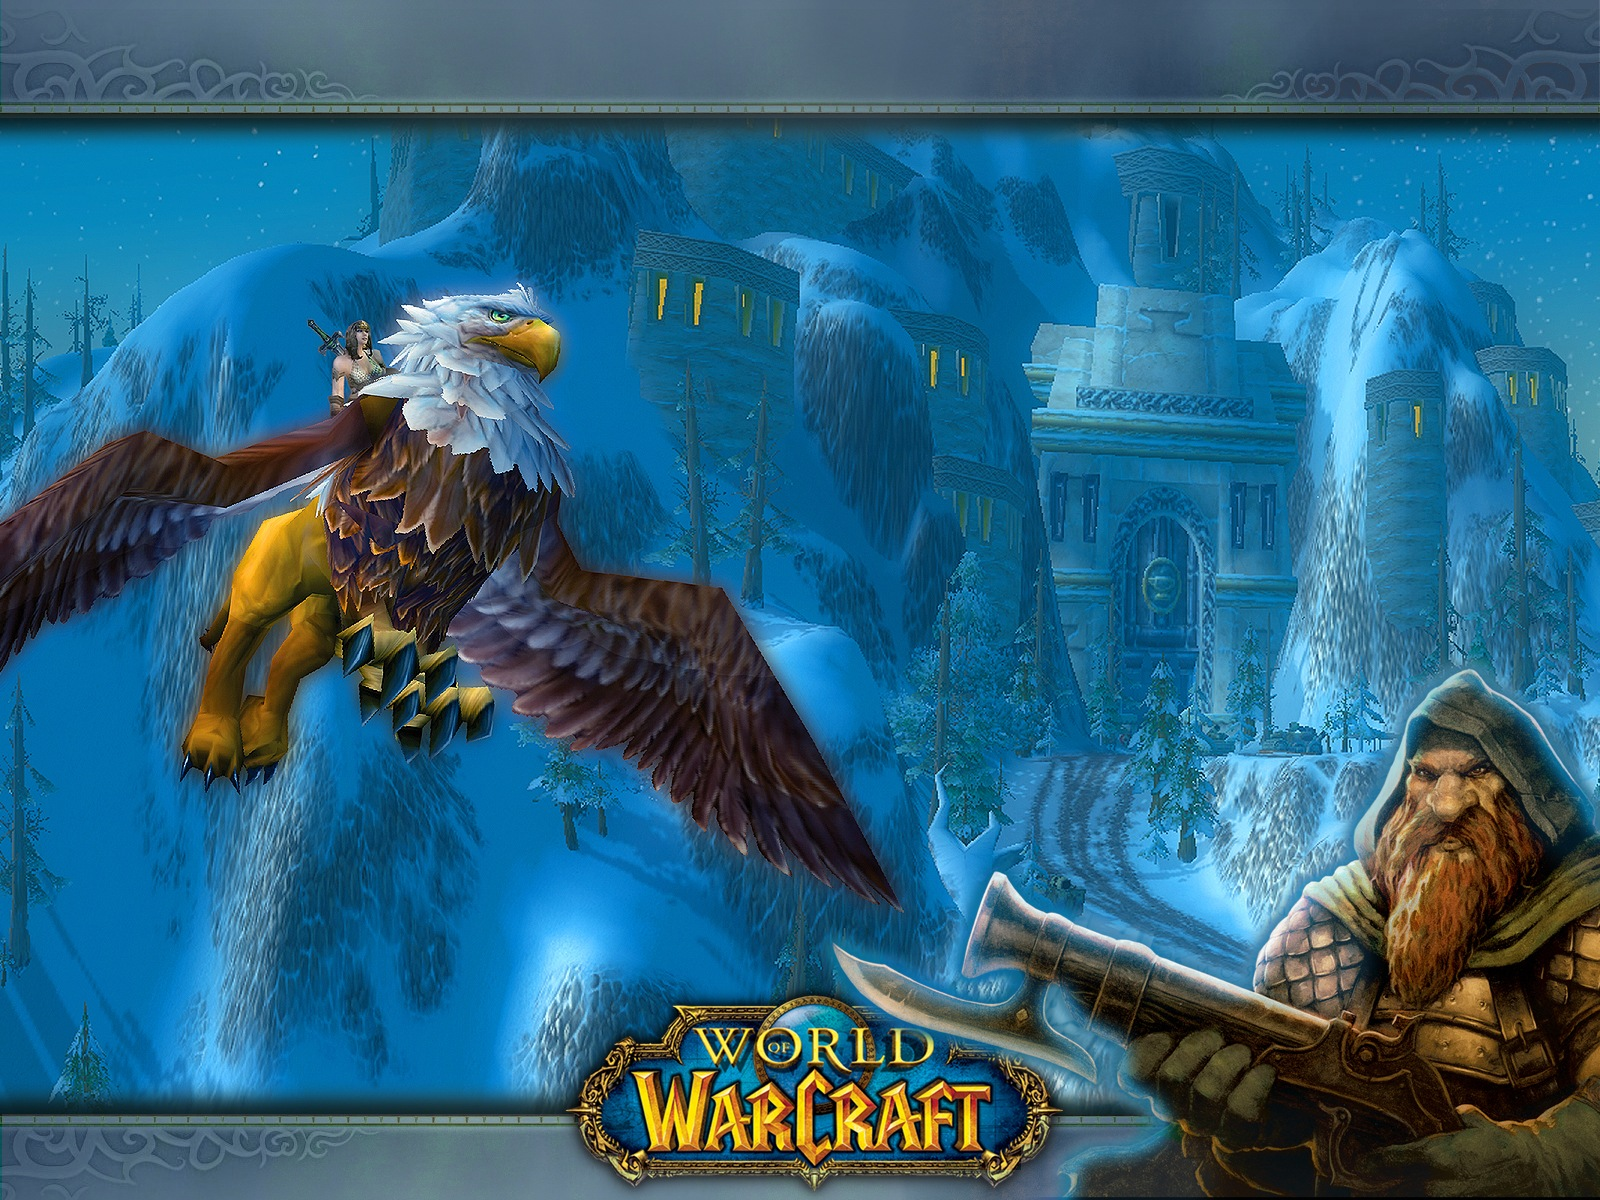 Top rated toons in world of warcraft adult images